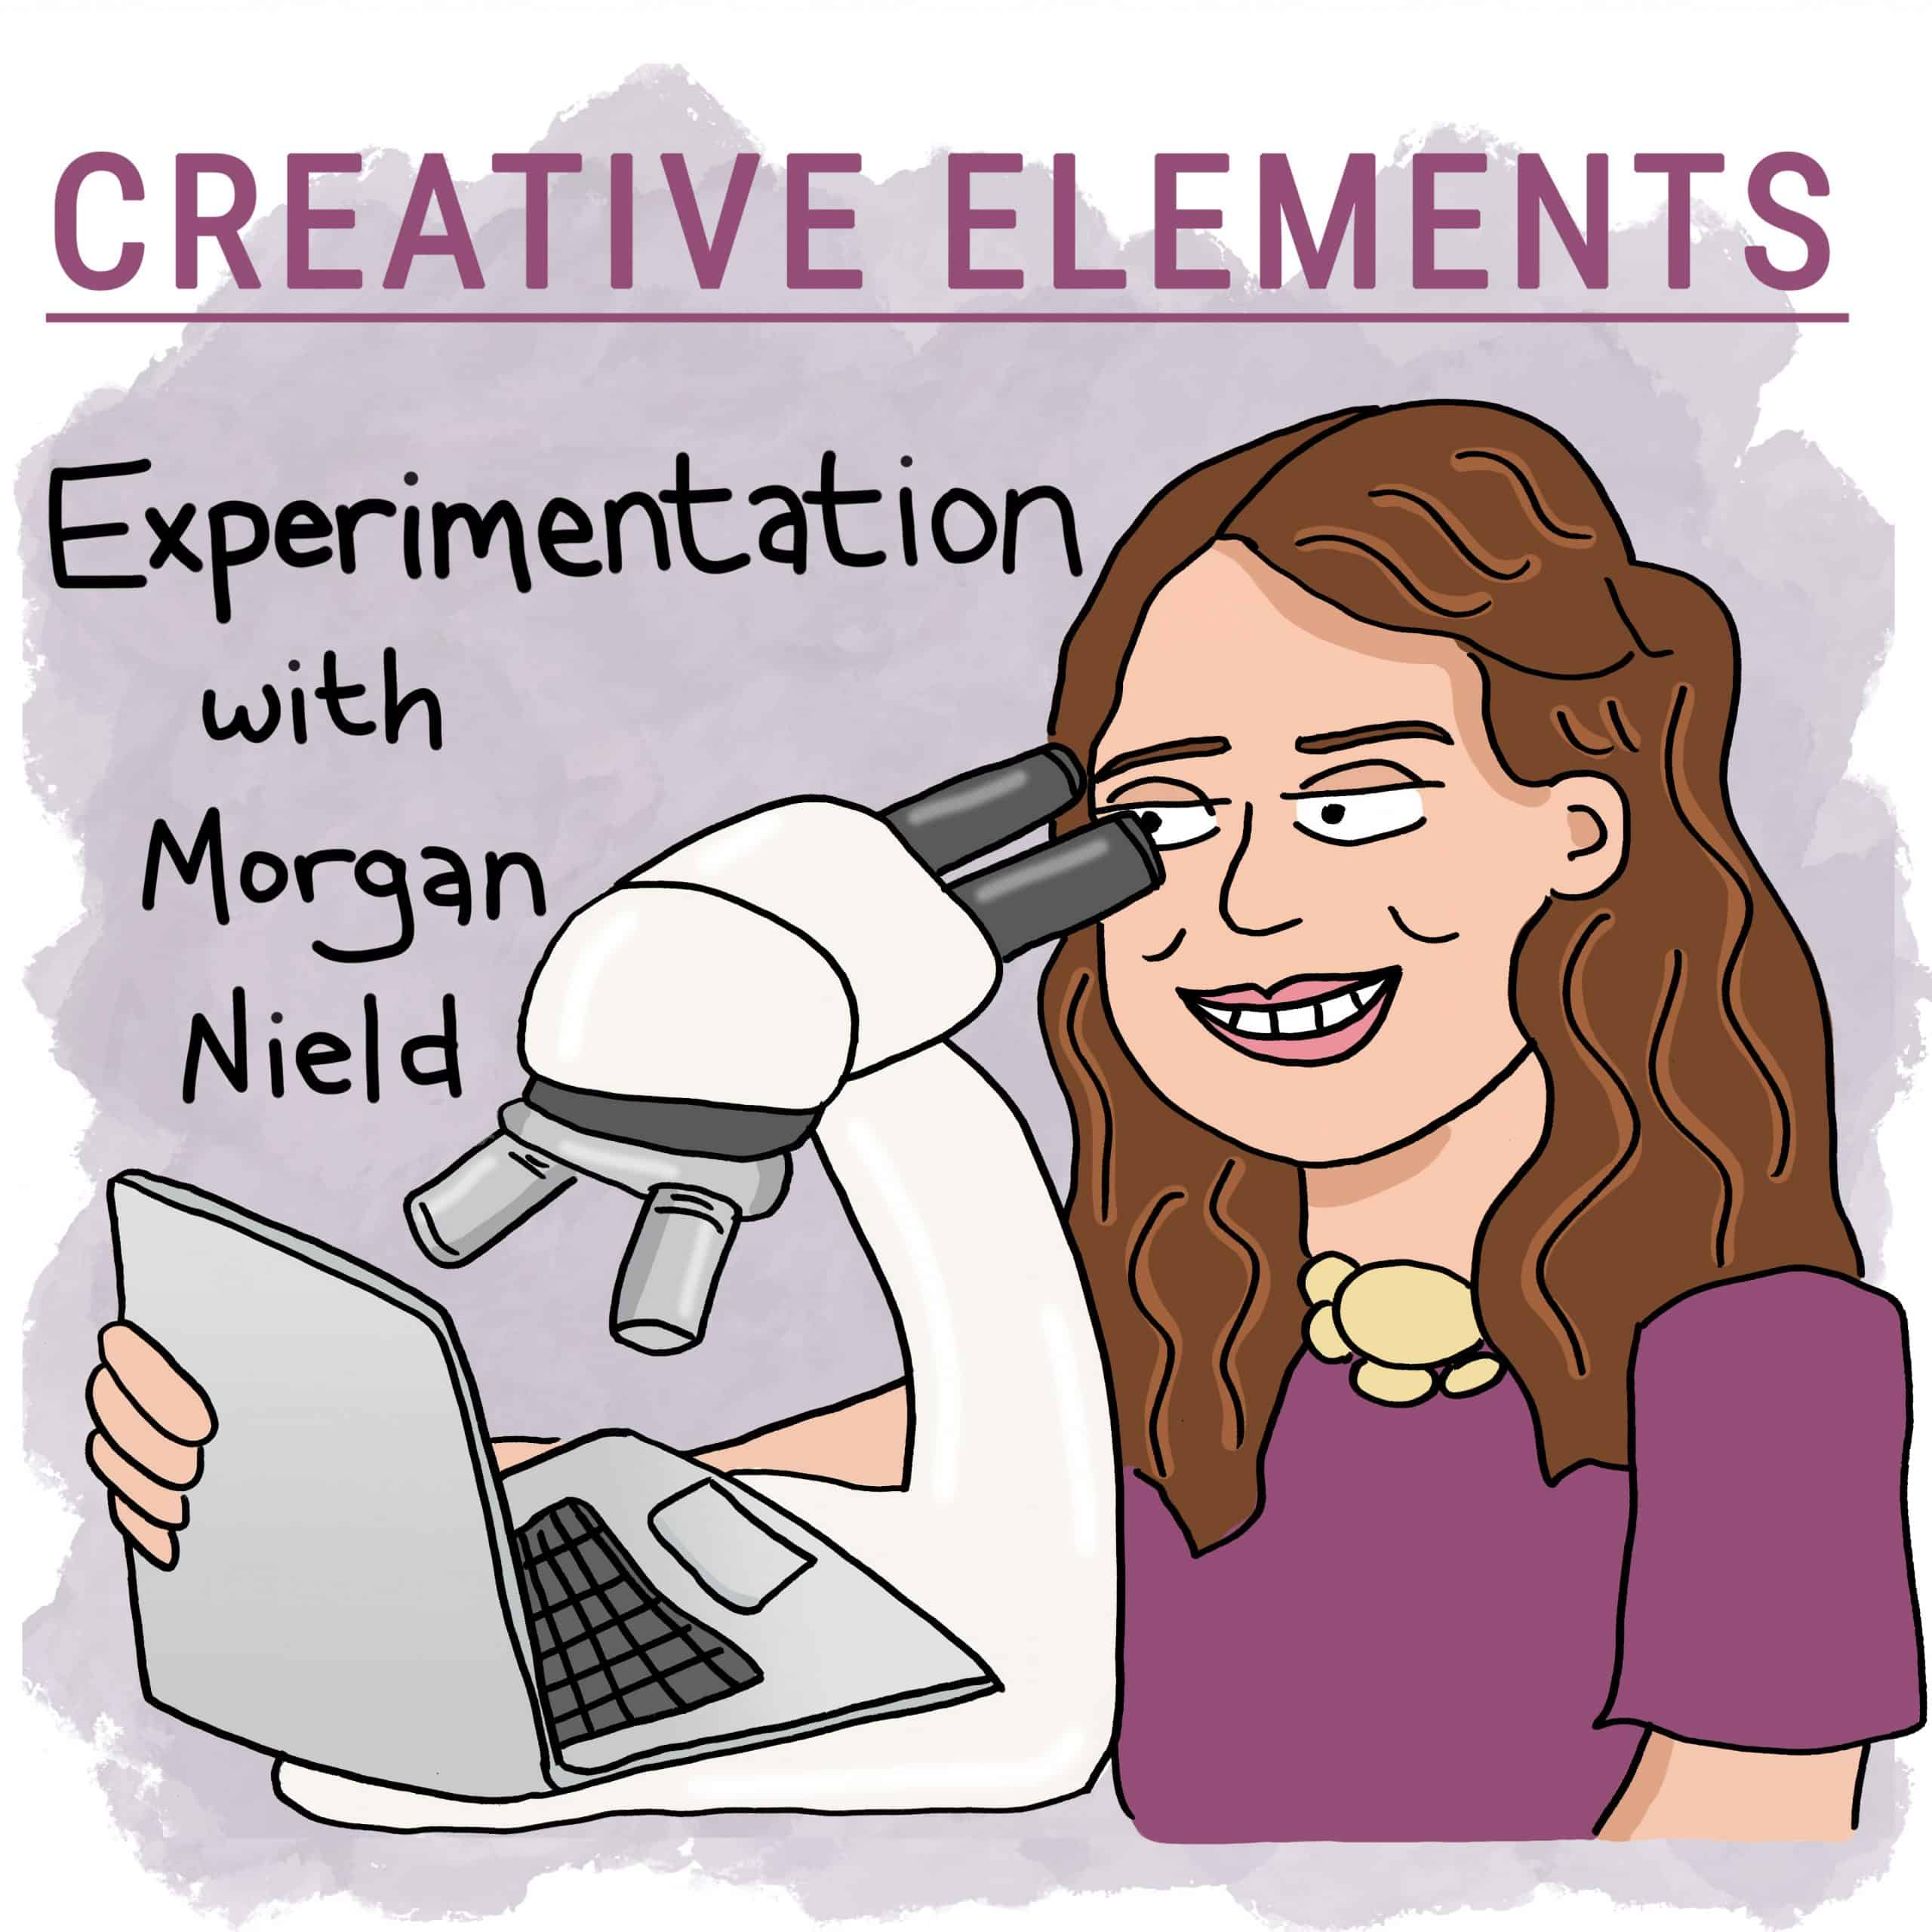 Morgan Nield on Creative Elements